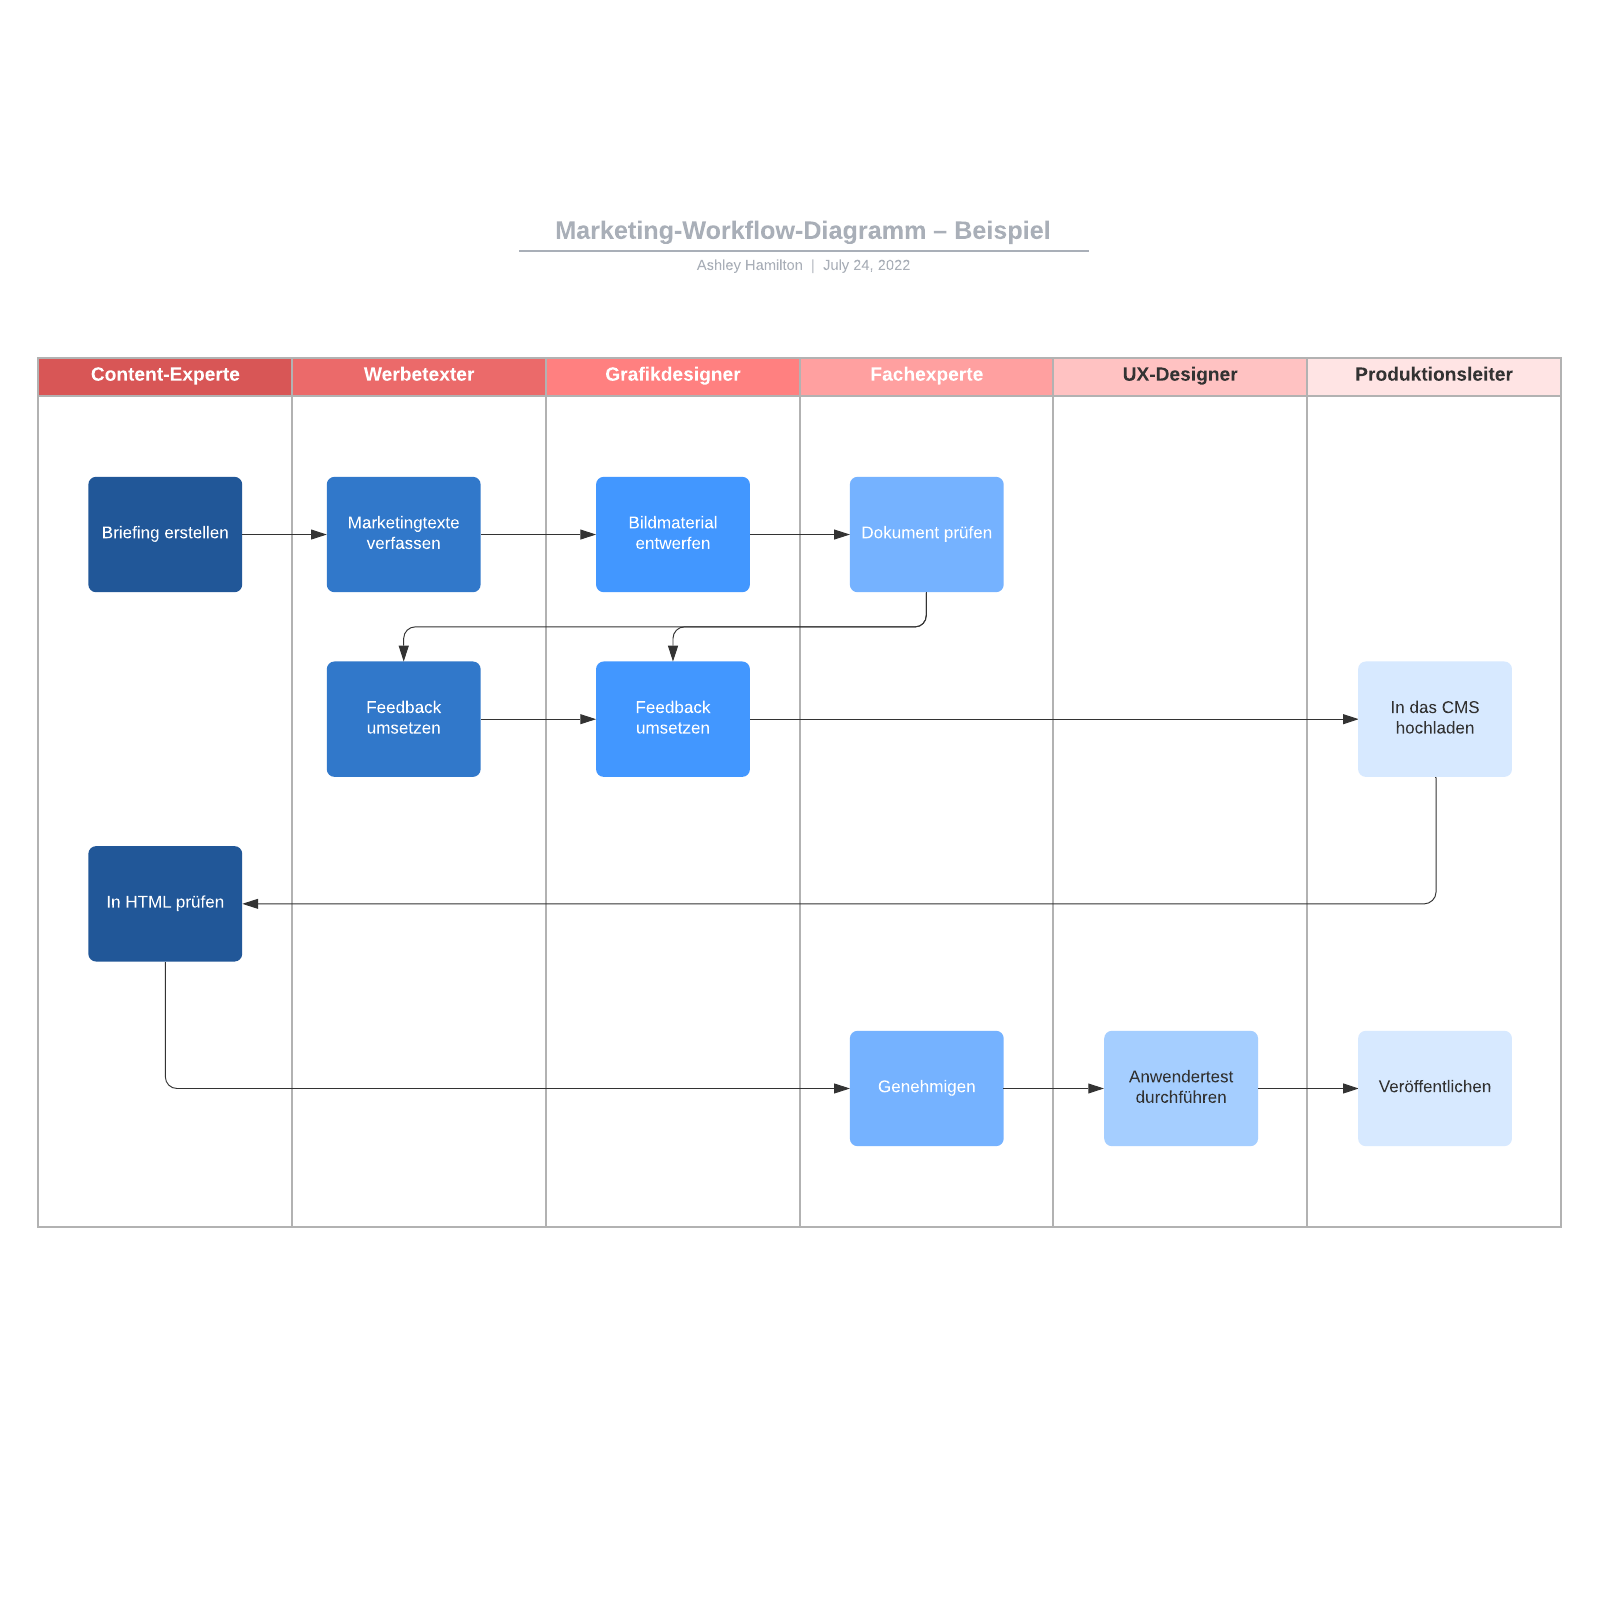 Marketing-Workflow-Diagramm – Beispiel